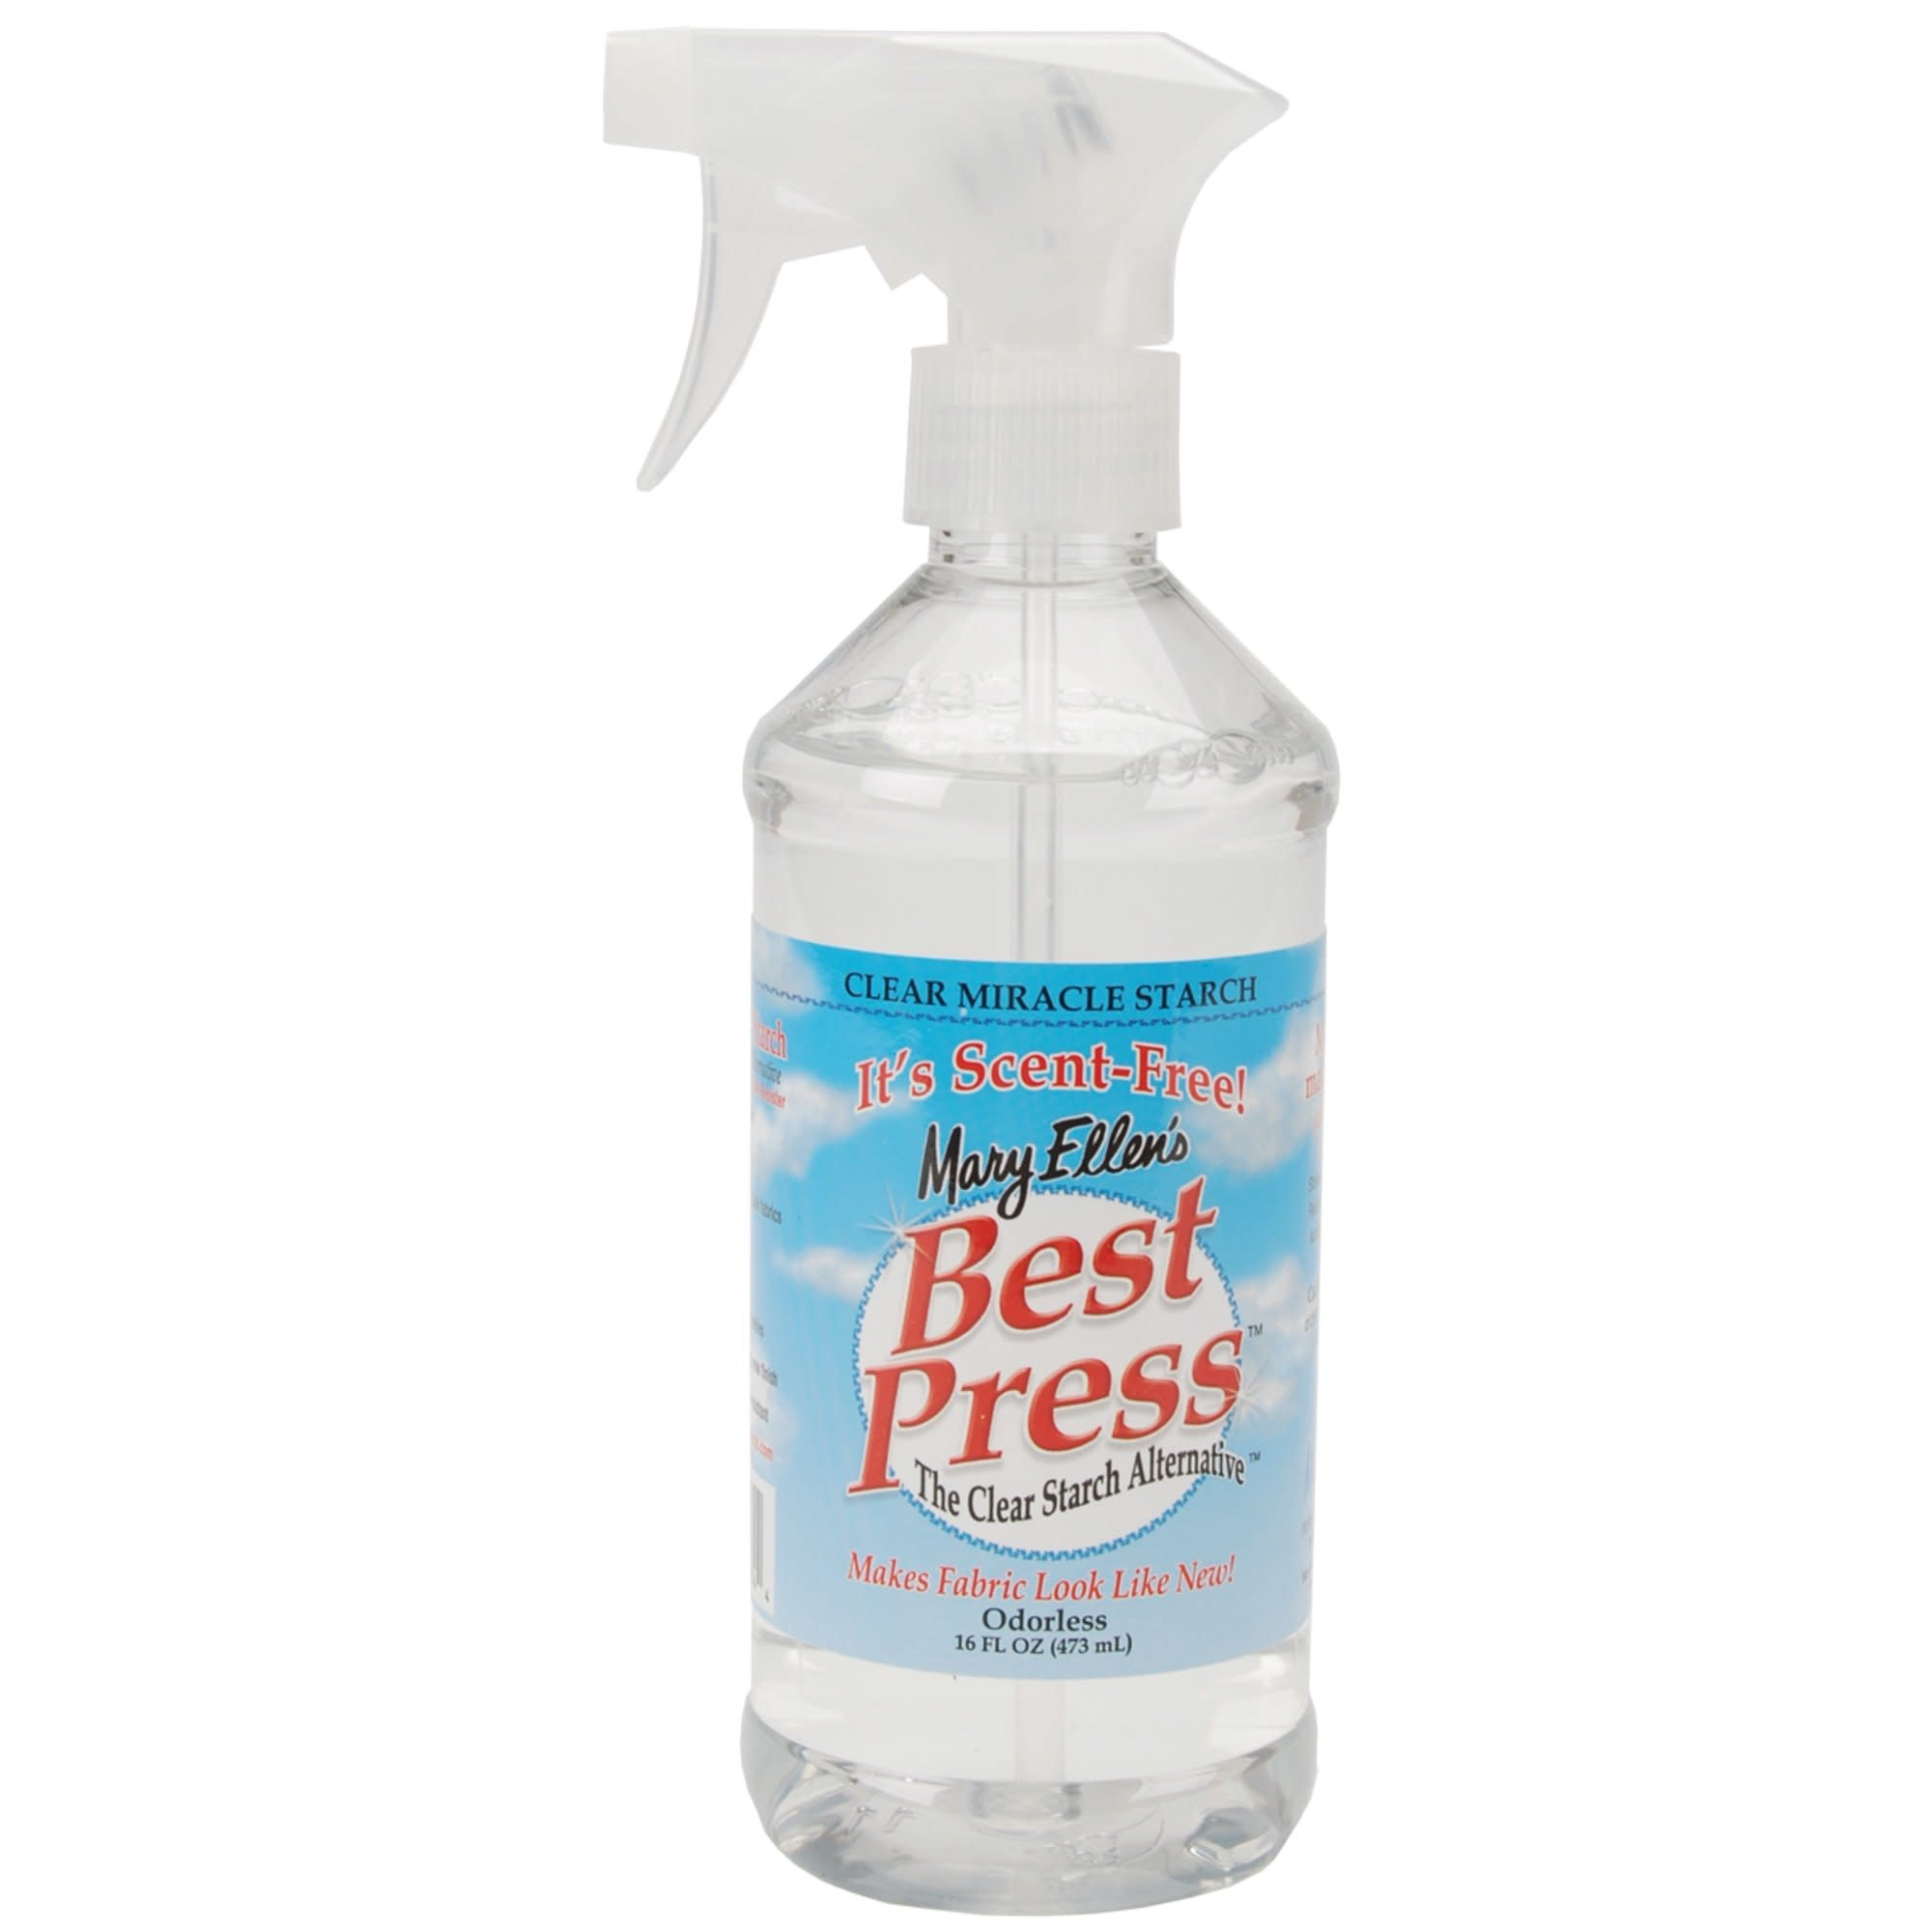 MARY ELLEN BEST PRESS UNSCENTED 499ml